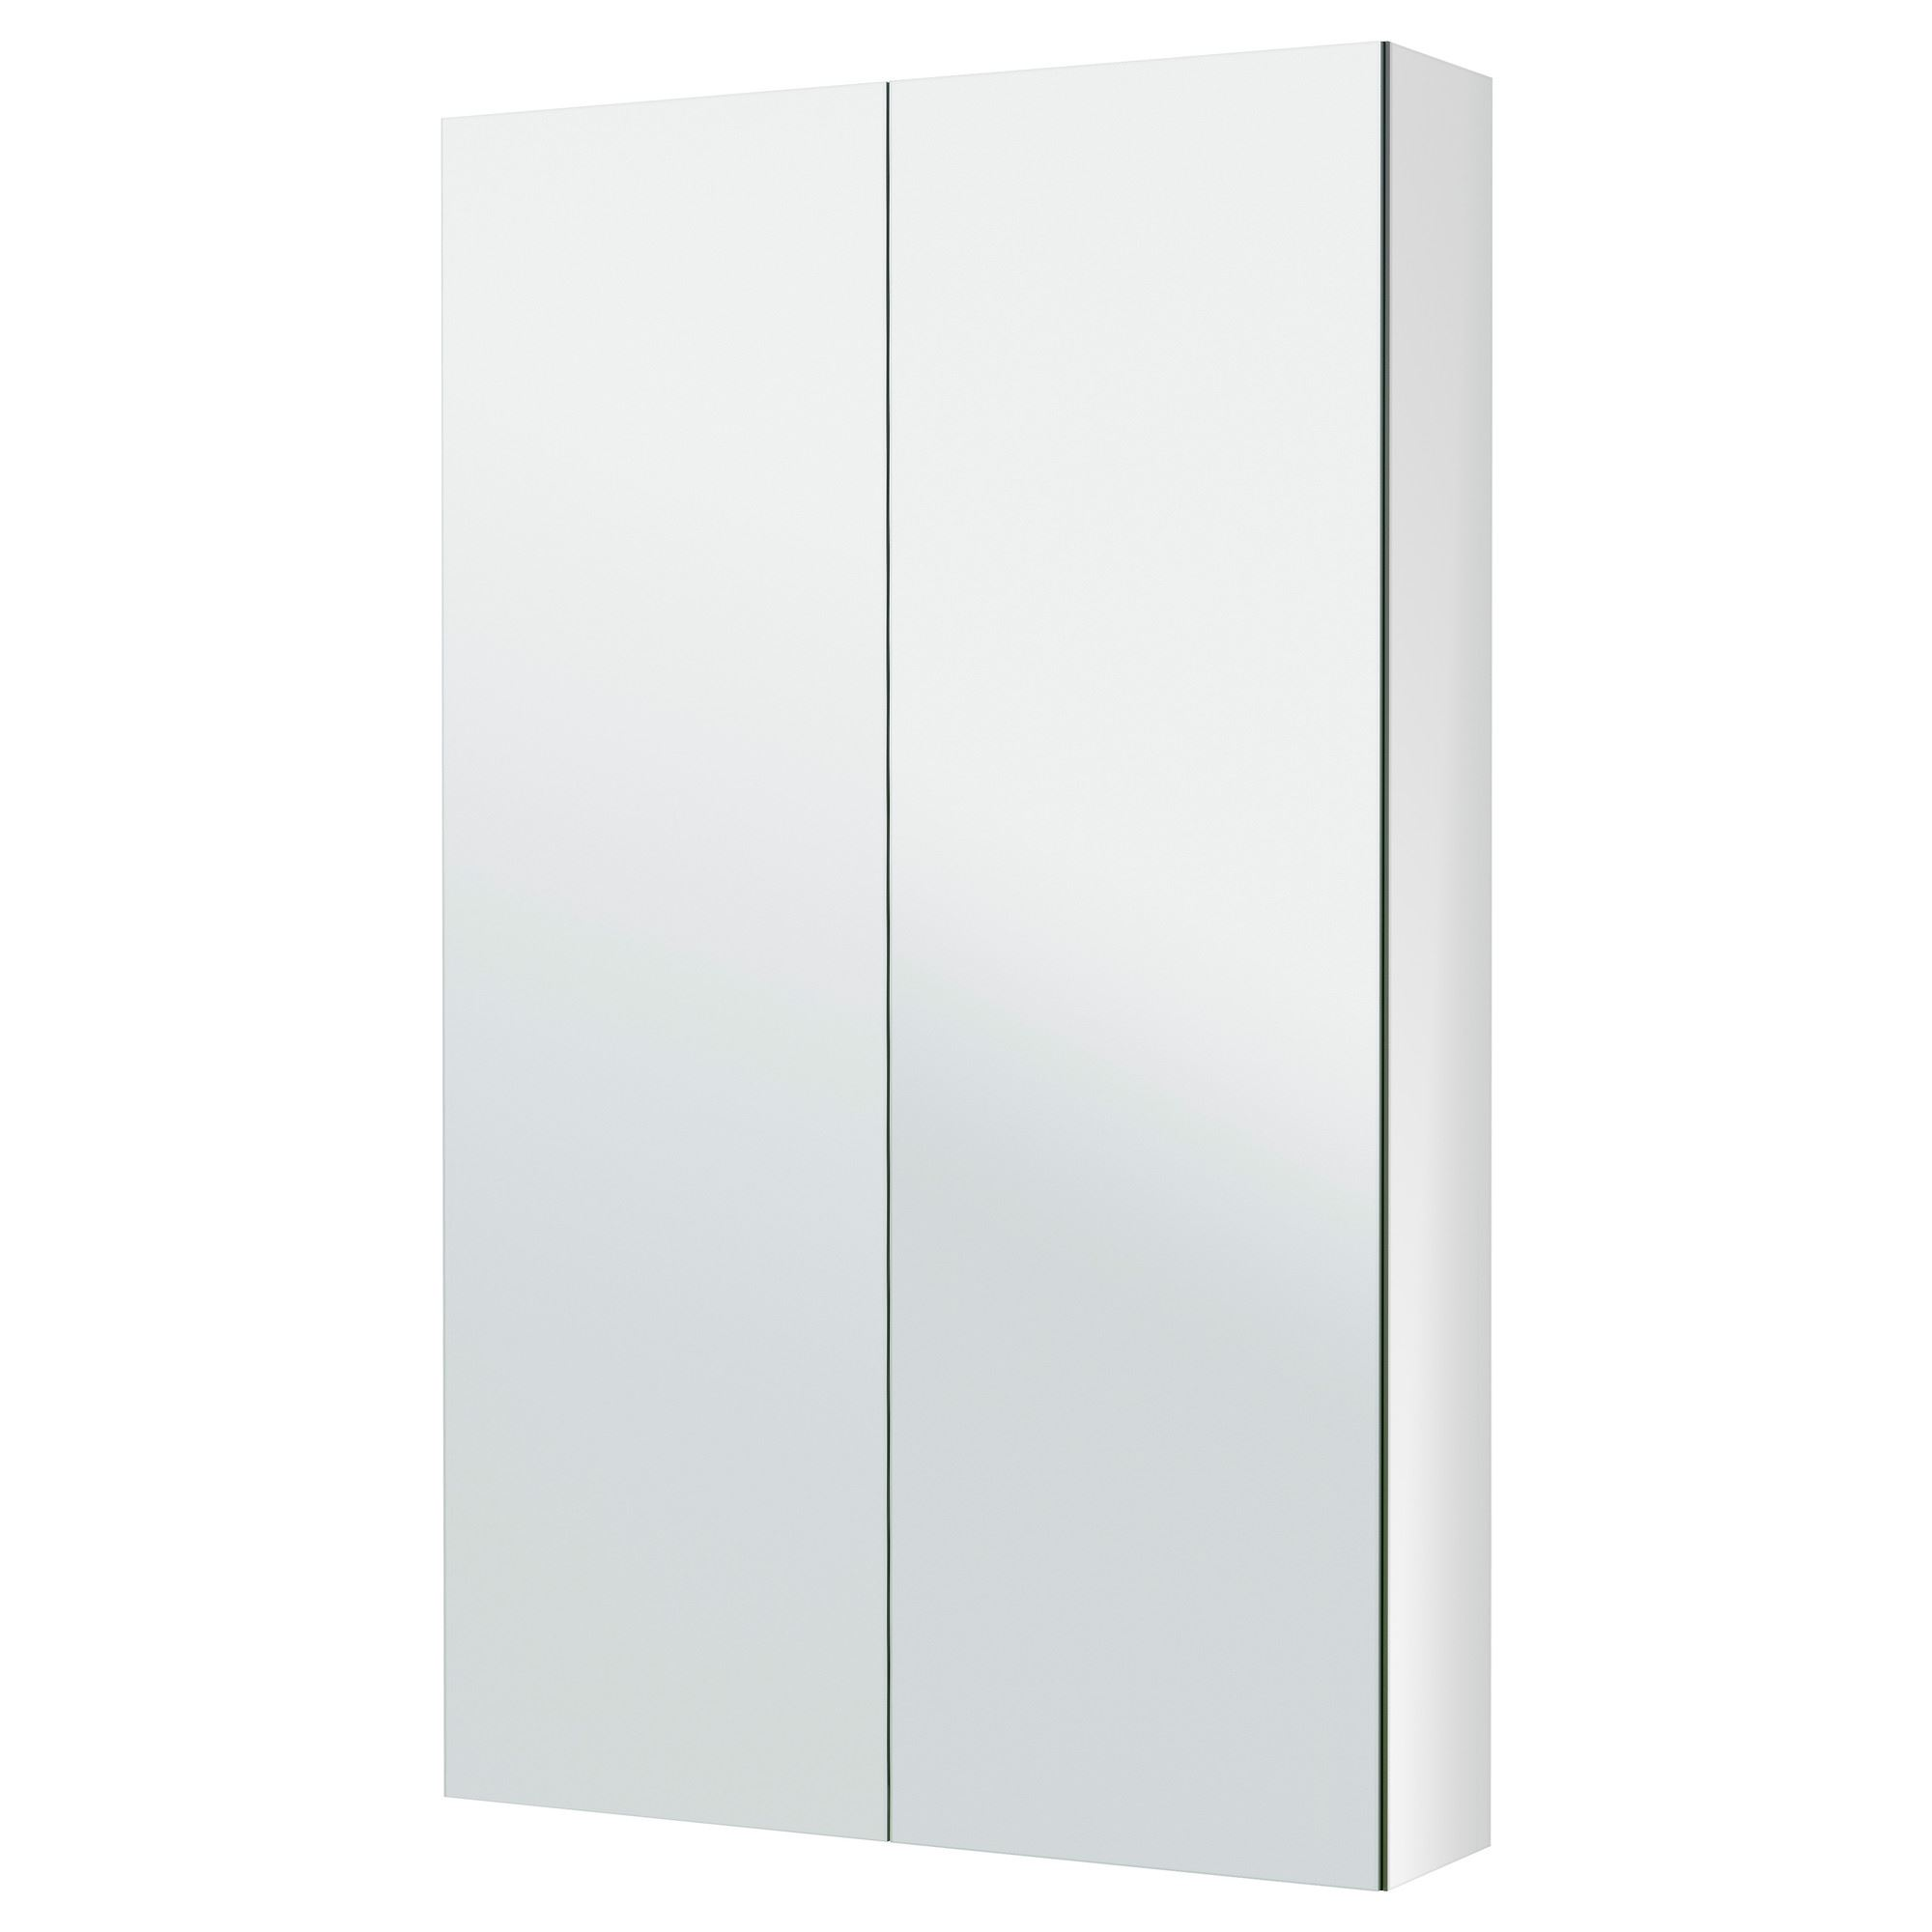 image cabinet bathroom bar with mirror product upcitemdb upc for prod wall towel cabinets com